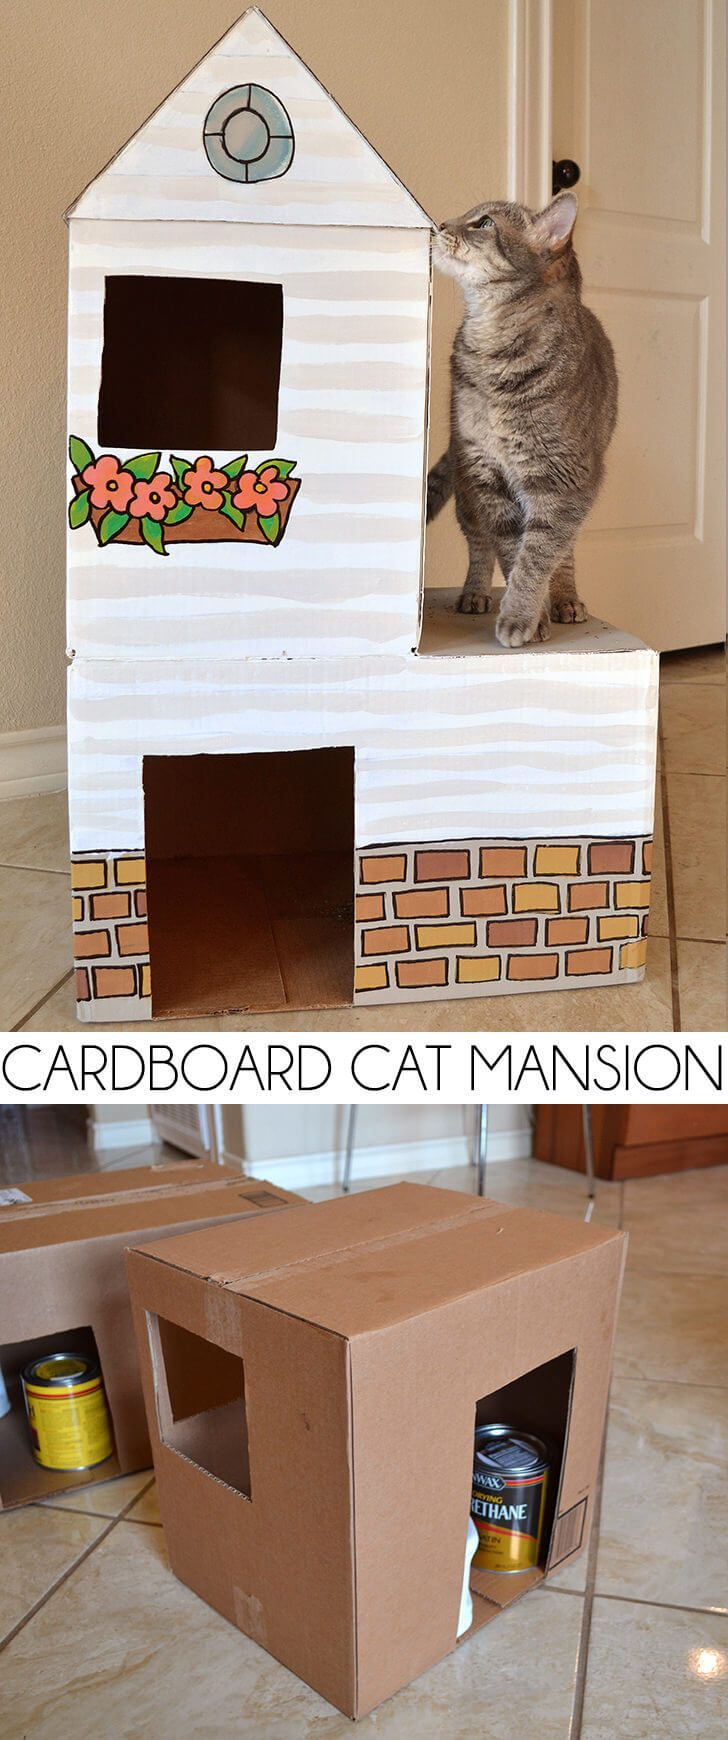 Cardboard cat mansion or a use for amazon prime boxes